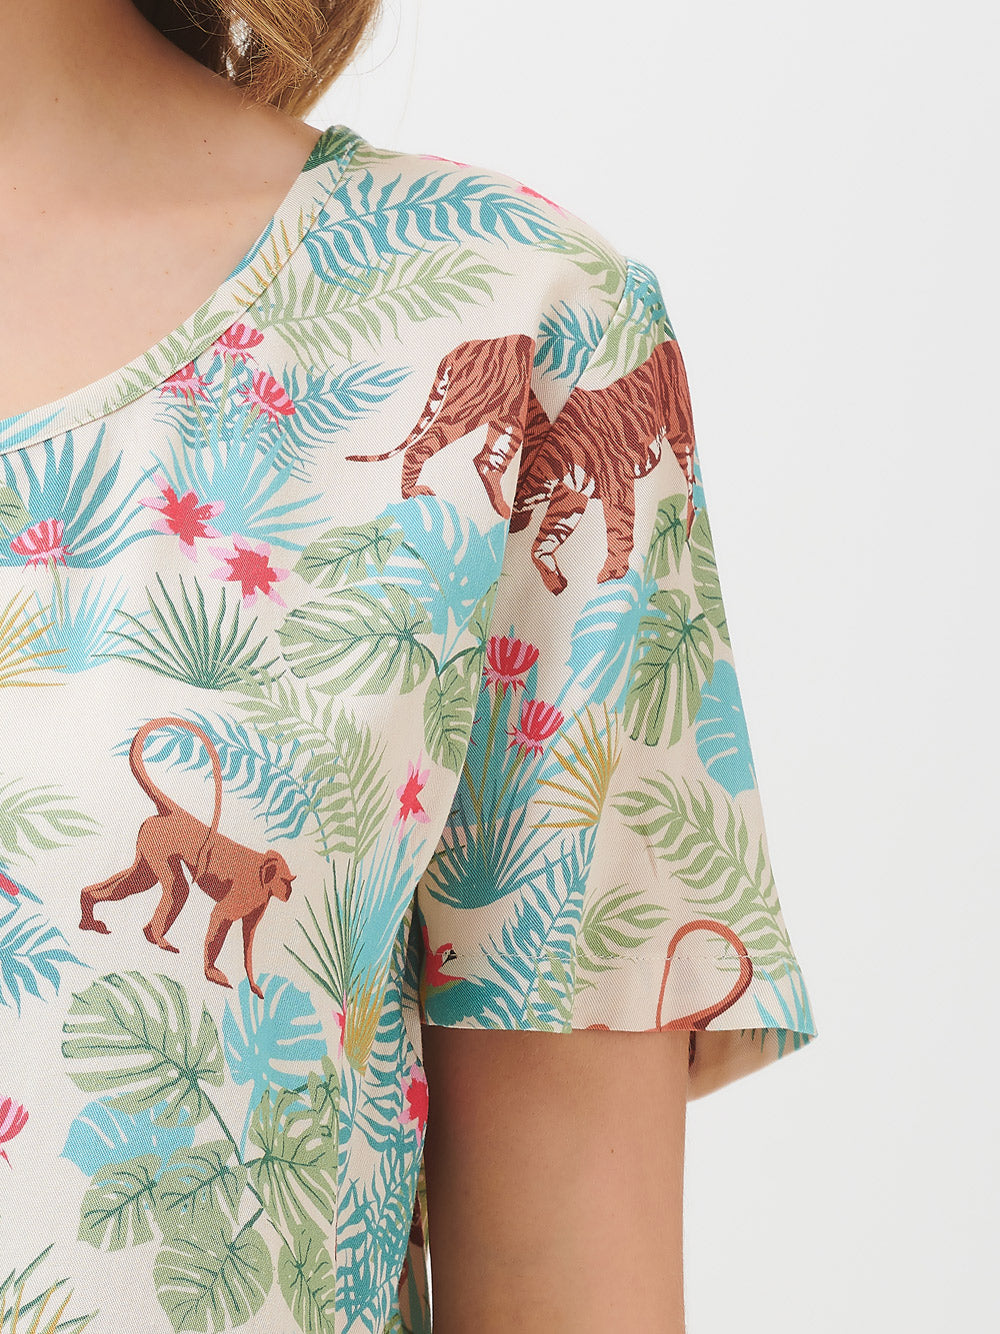 SUGARHILL BRIGHTON Tilda Daybreak Jungle Top